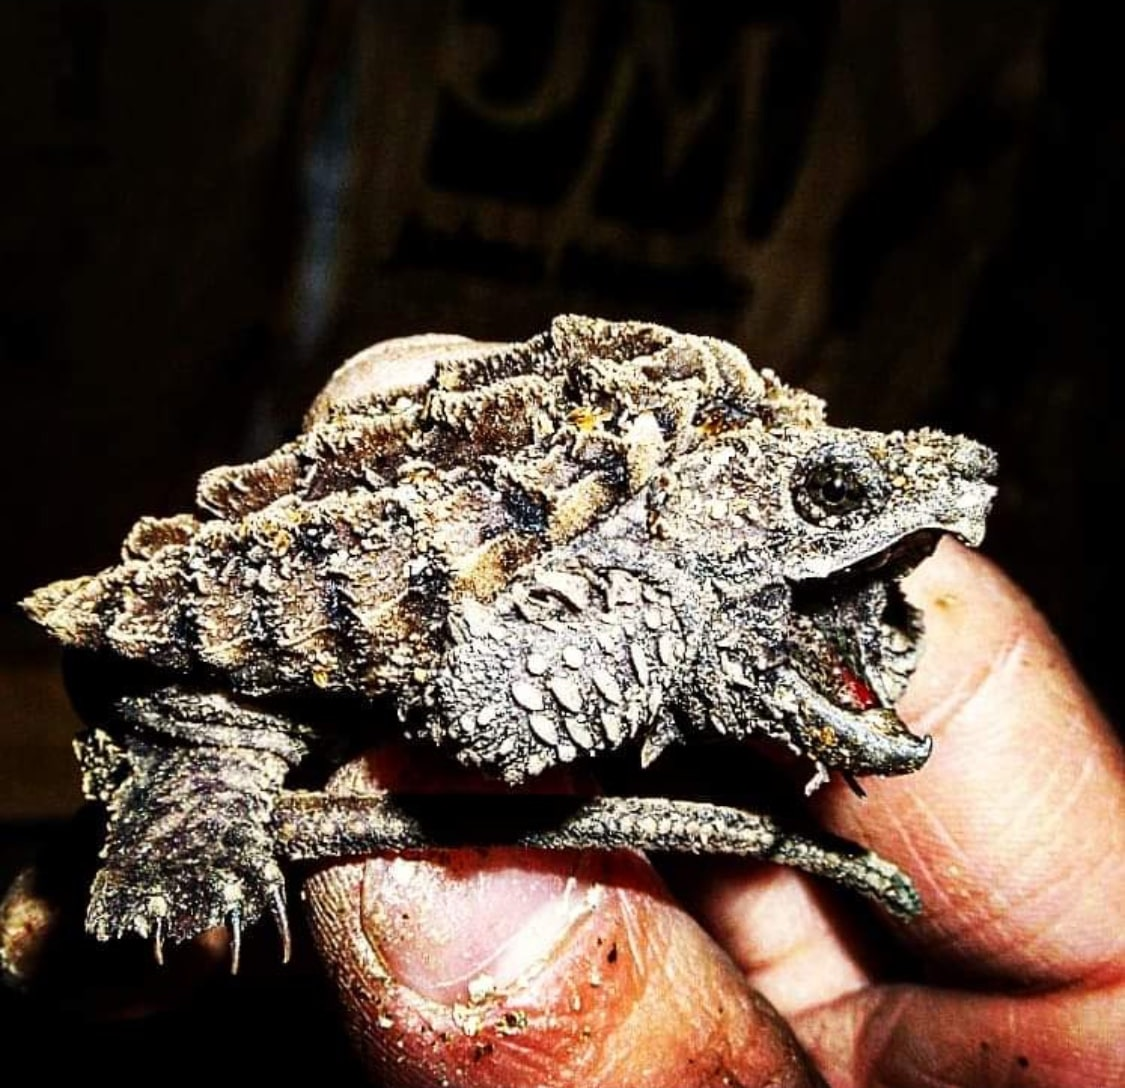 Baby Aligator Snapping Turtle